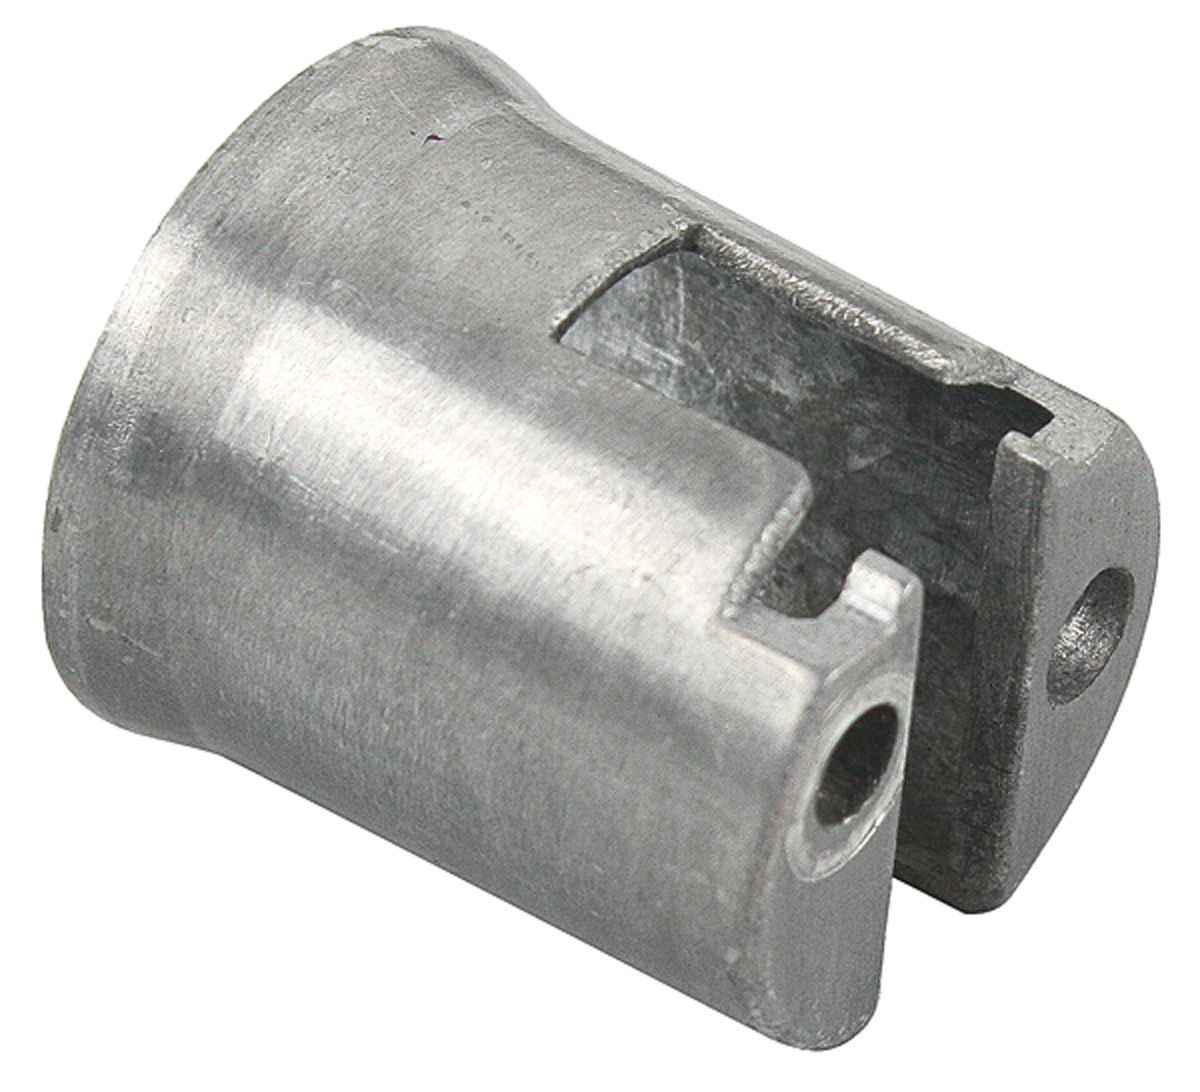 Photo of Chevelle Console Lock Retainer, 1970-72